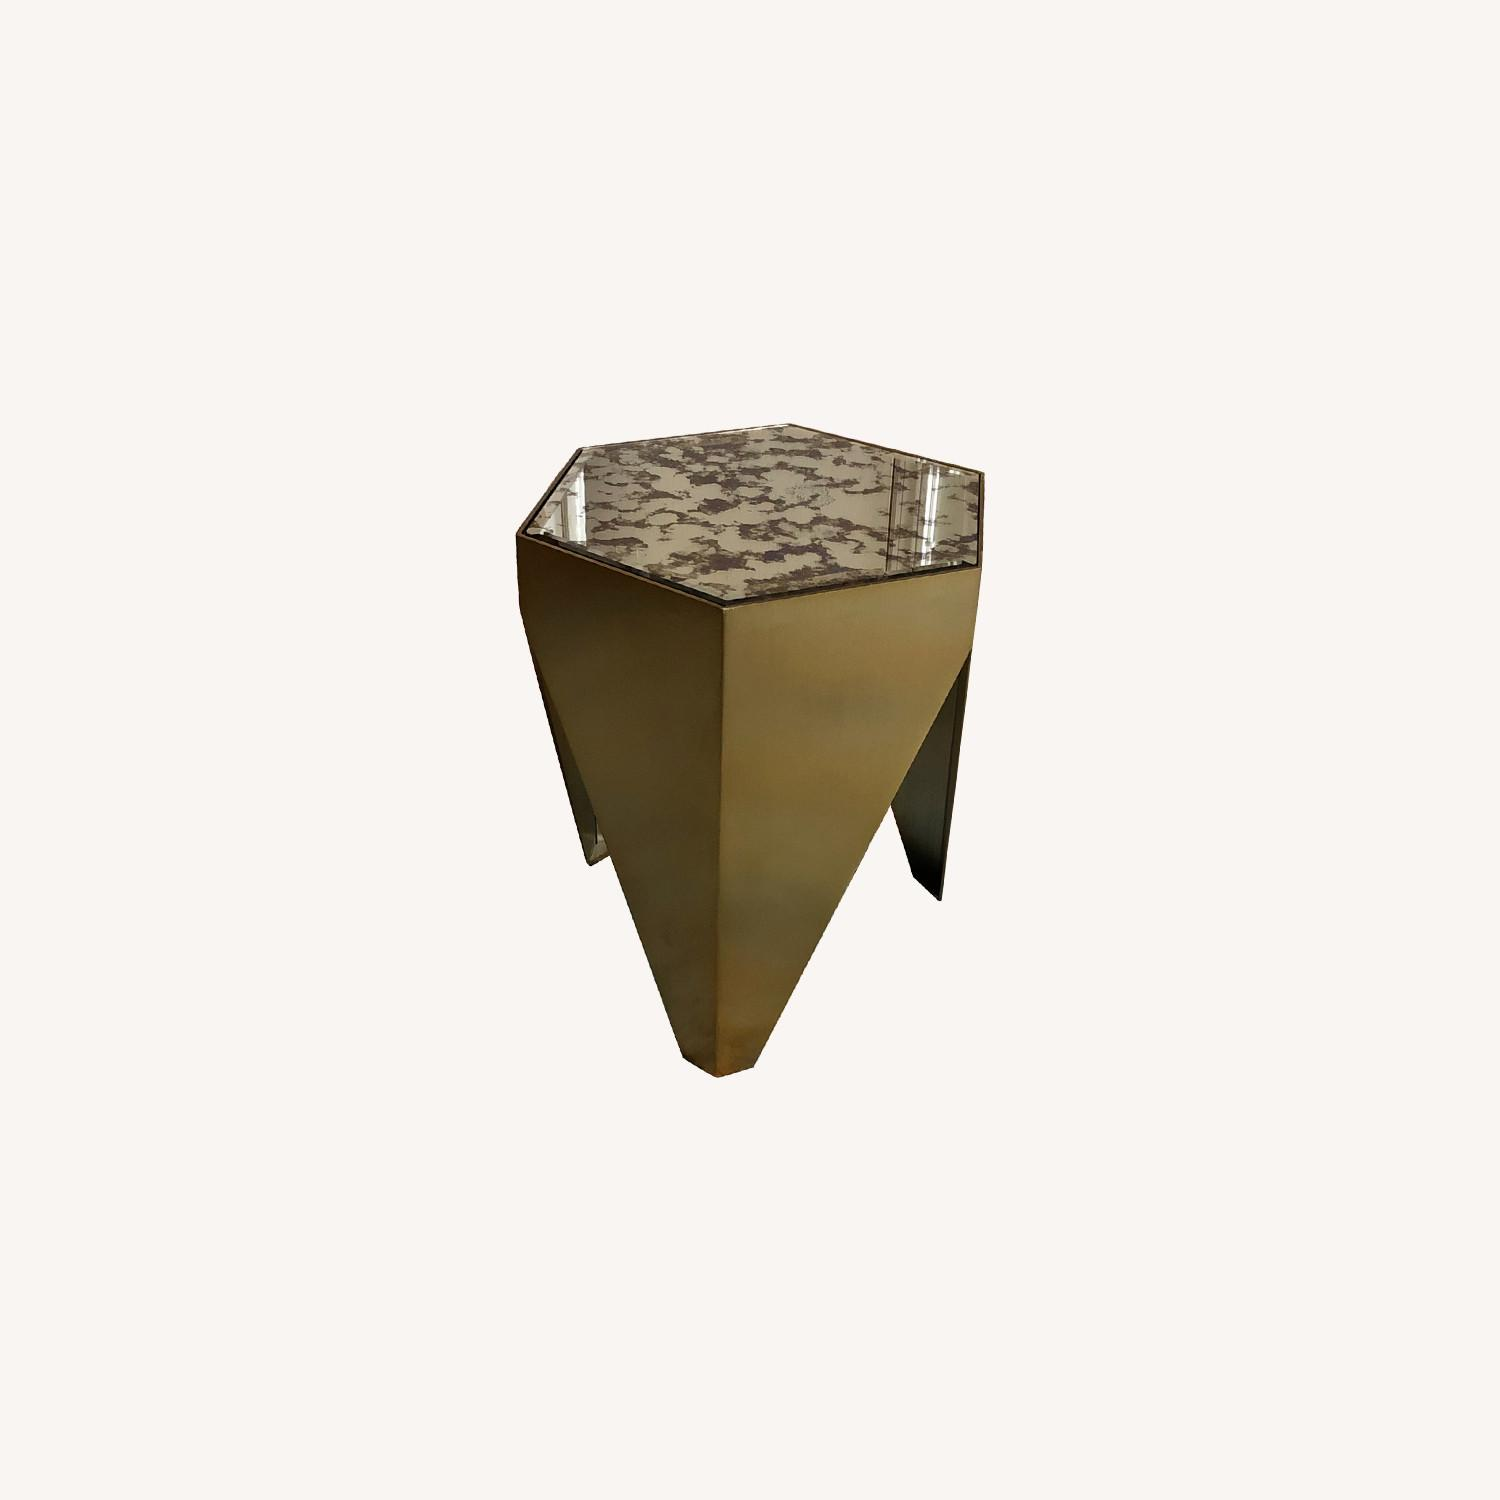 Hexagonal Glass and Brass-Tone Metallic Side Table - image-0